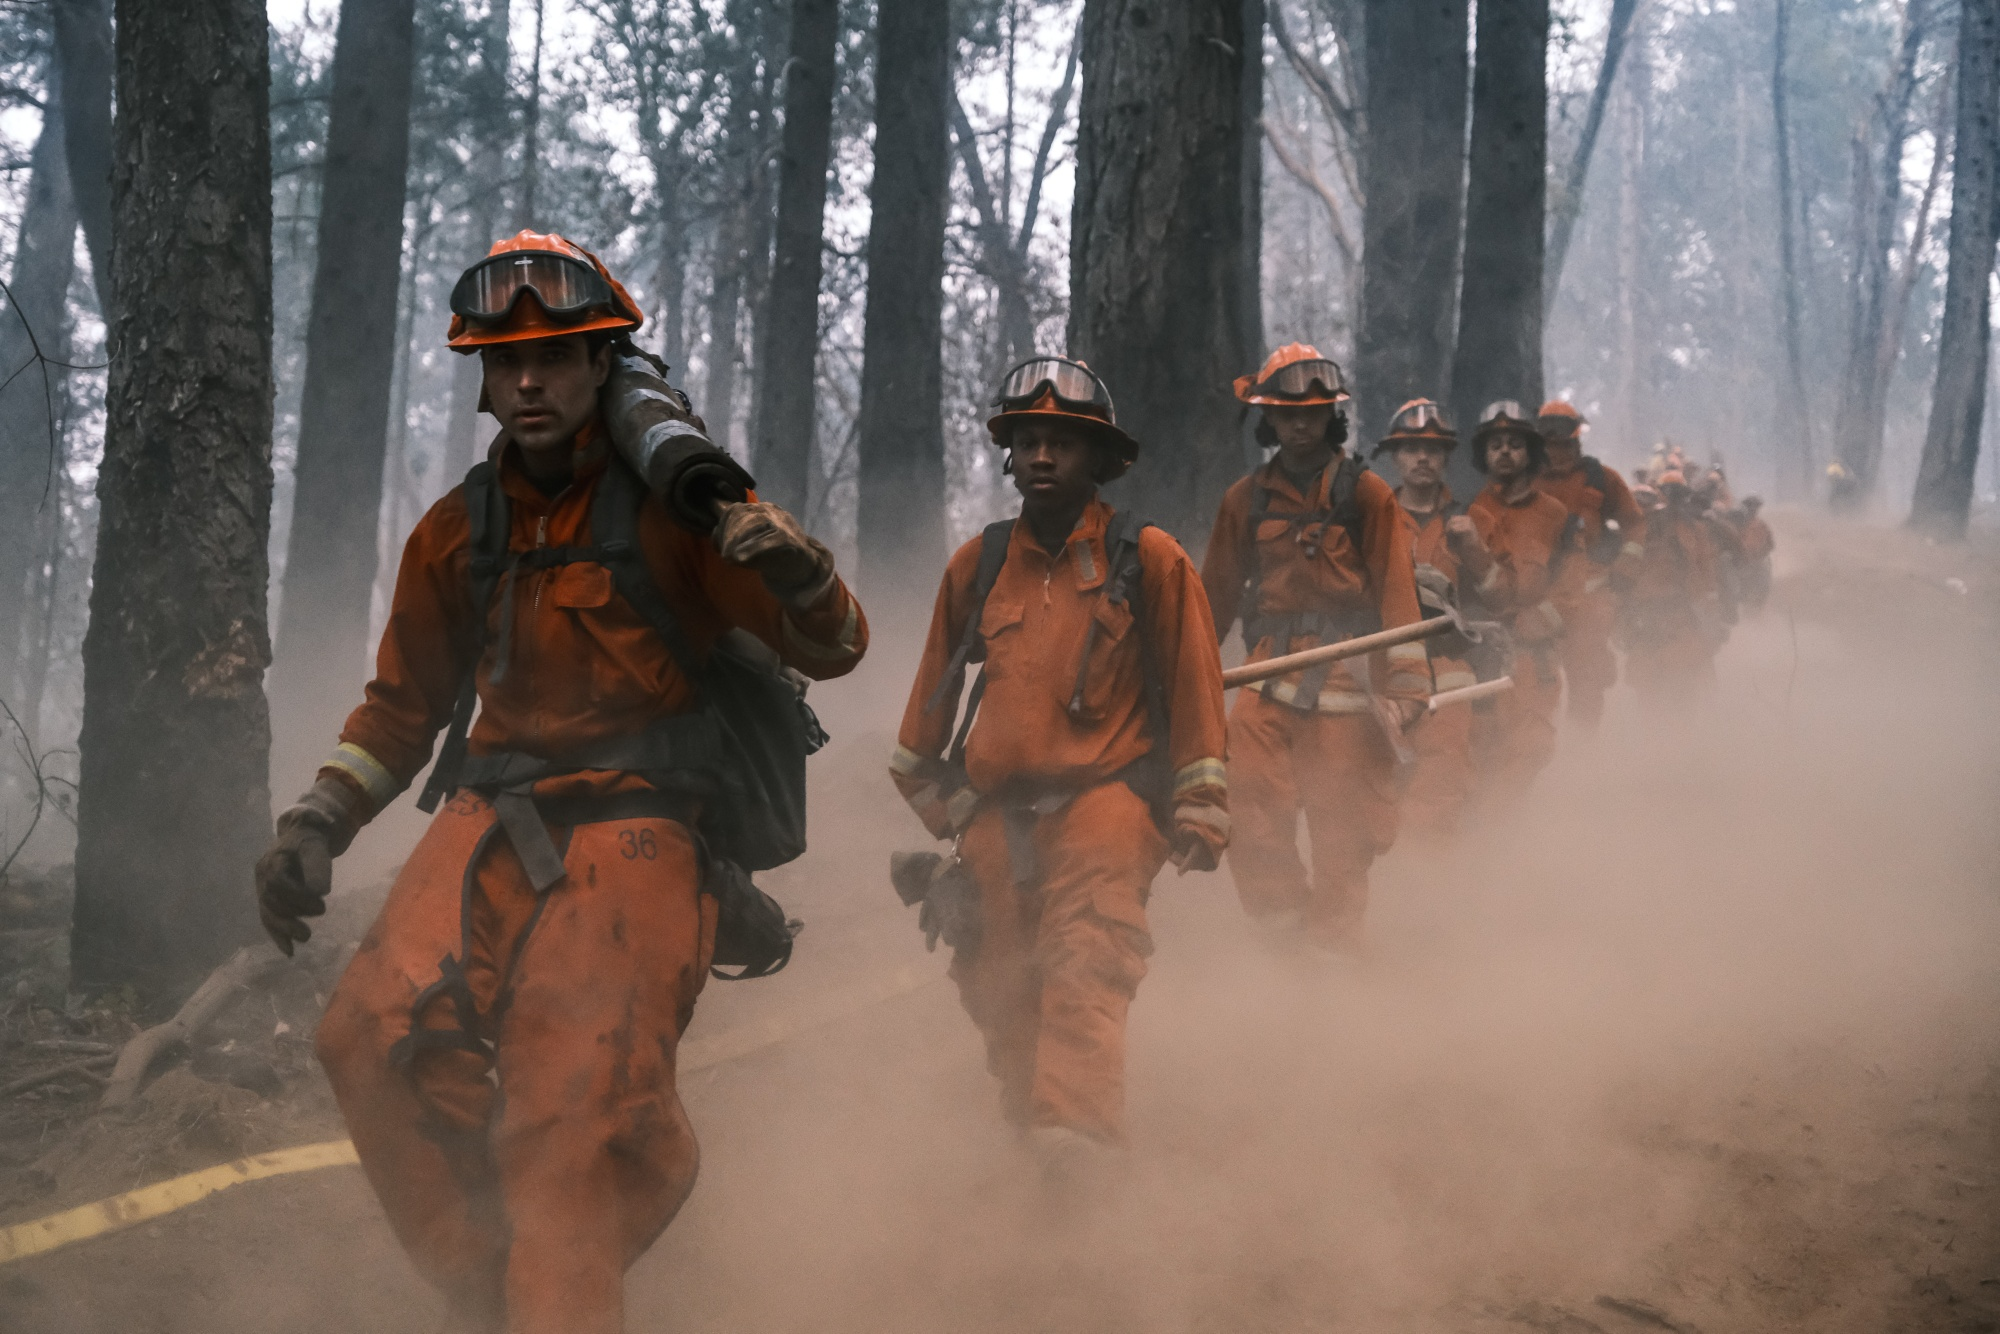 Last year, theU.S. West sufferedwildfires that charredmillions ofacres, left dozens of people dead and ravaged air quality from Los Angeles to Seattle.